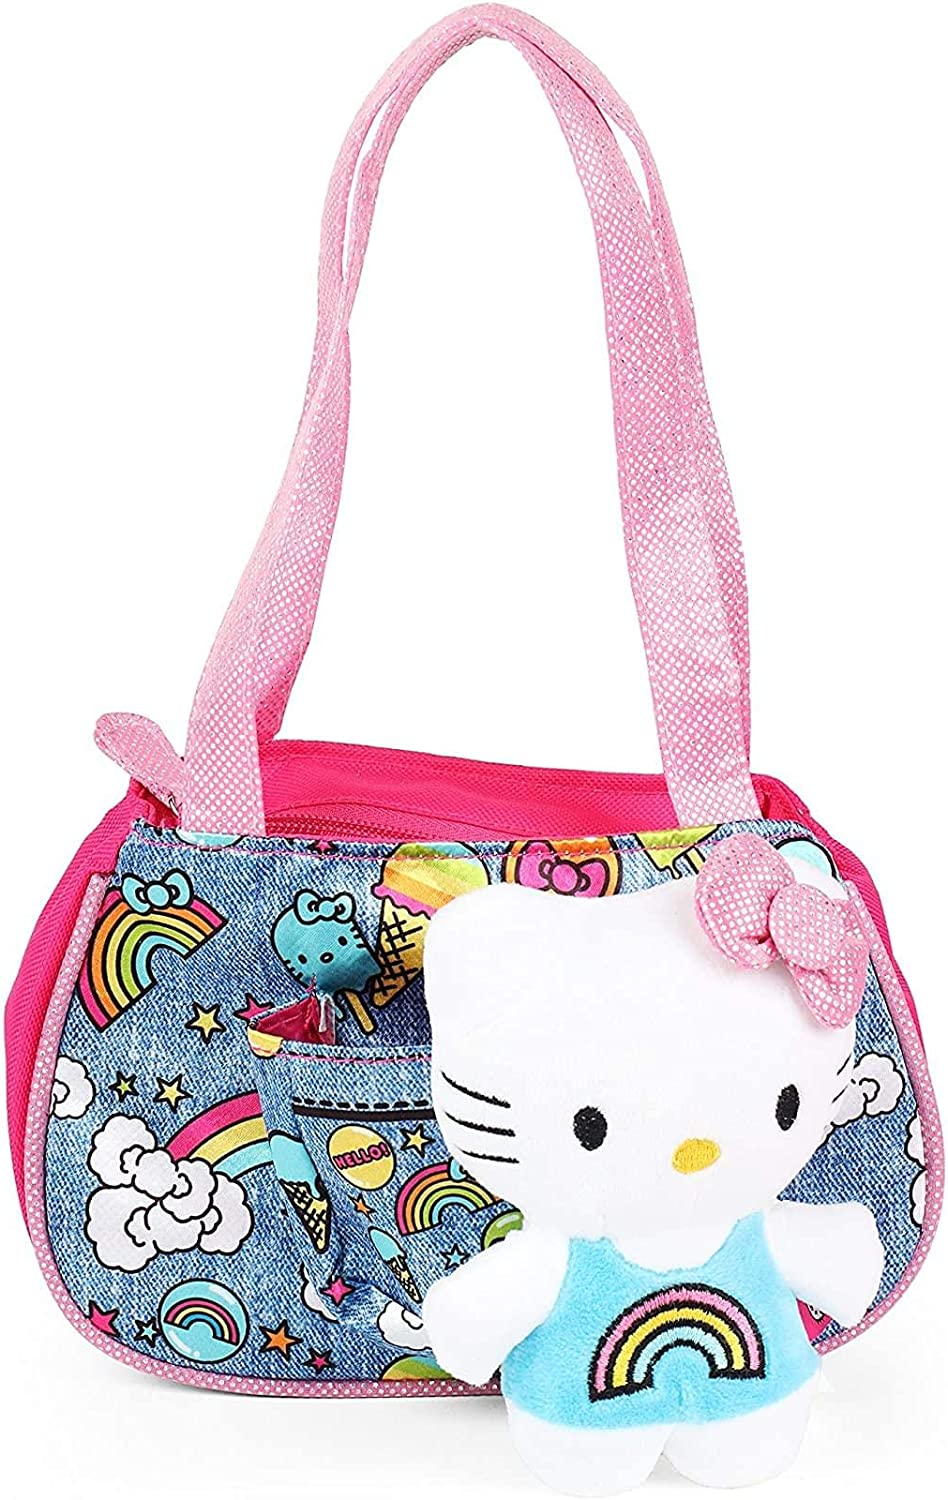 Sanrio Hello Kitty Pink Denim Tote with Hello Kitty Plush Cat for Girls